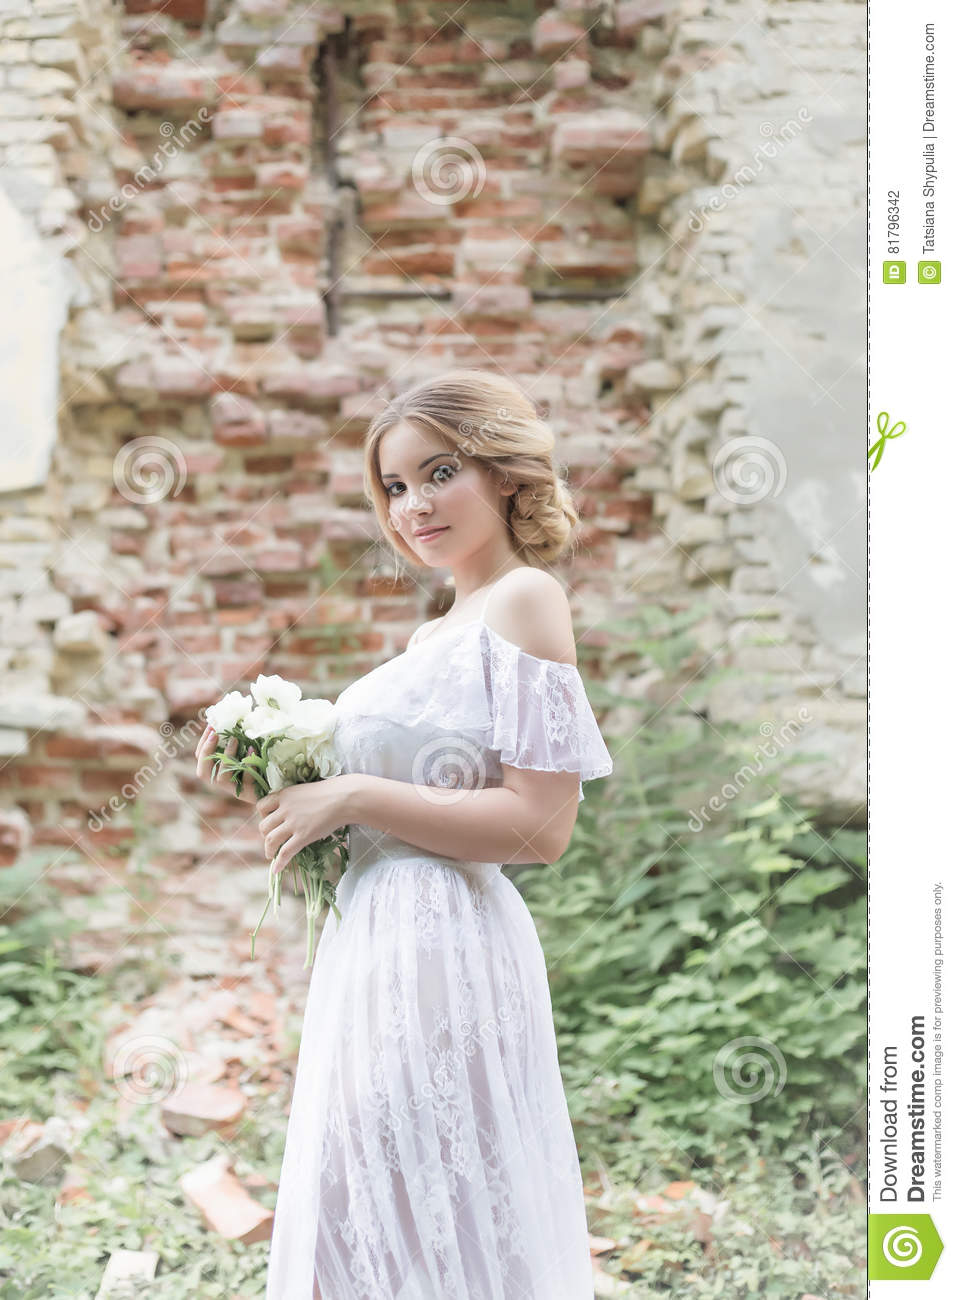 Beautiful young sweet blonde girl with wedding bouquet in the hands of the boudoir in a white dress with evening hairstyle walks